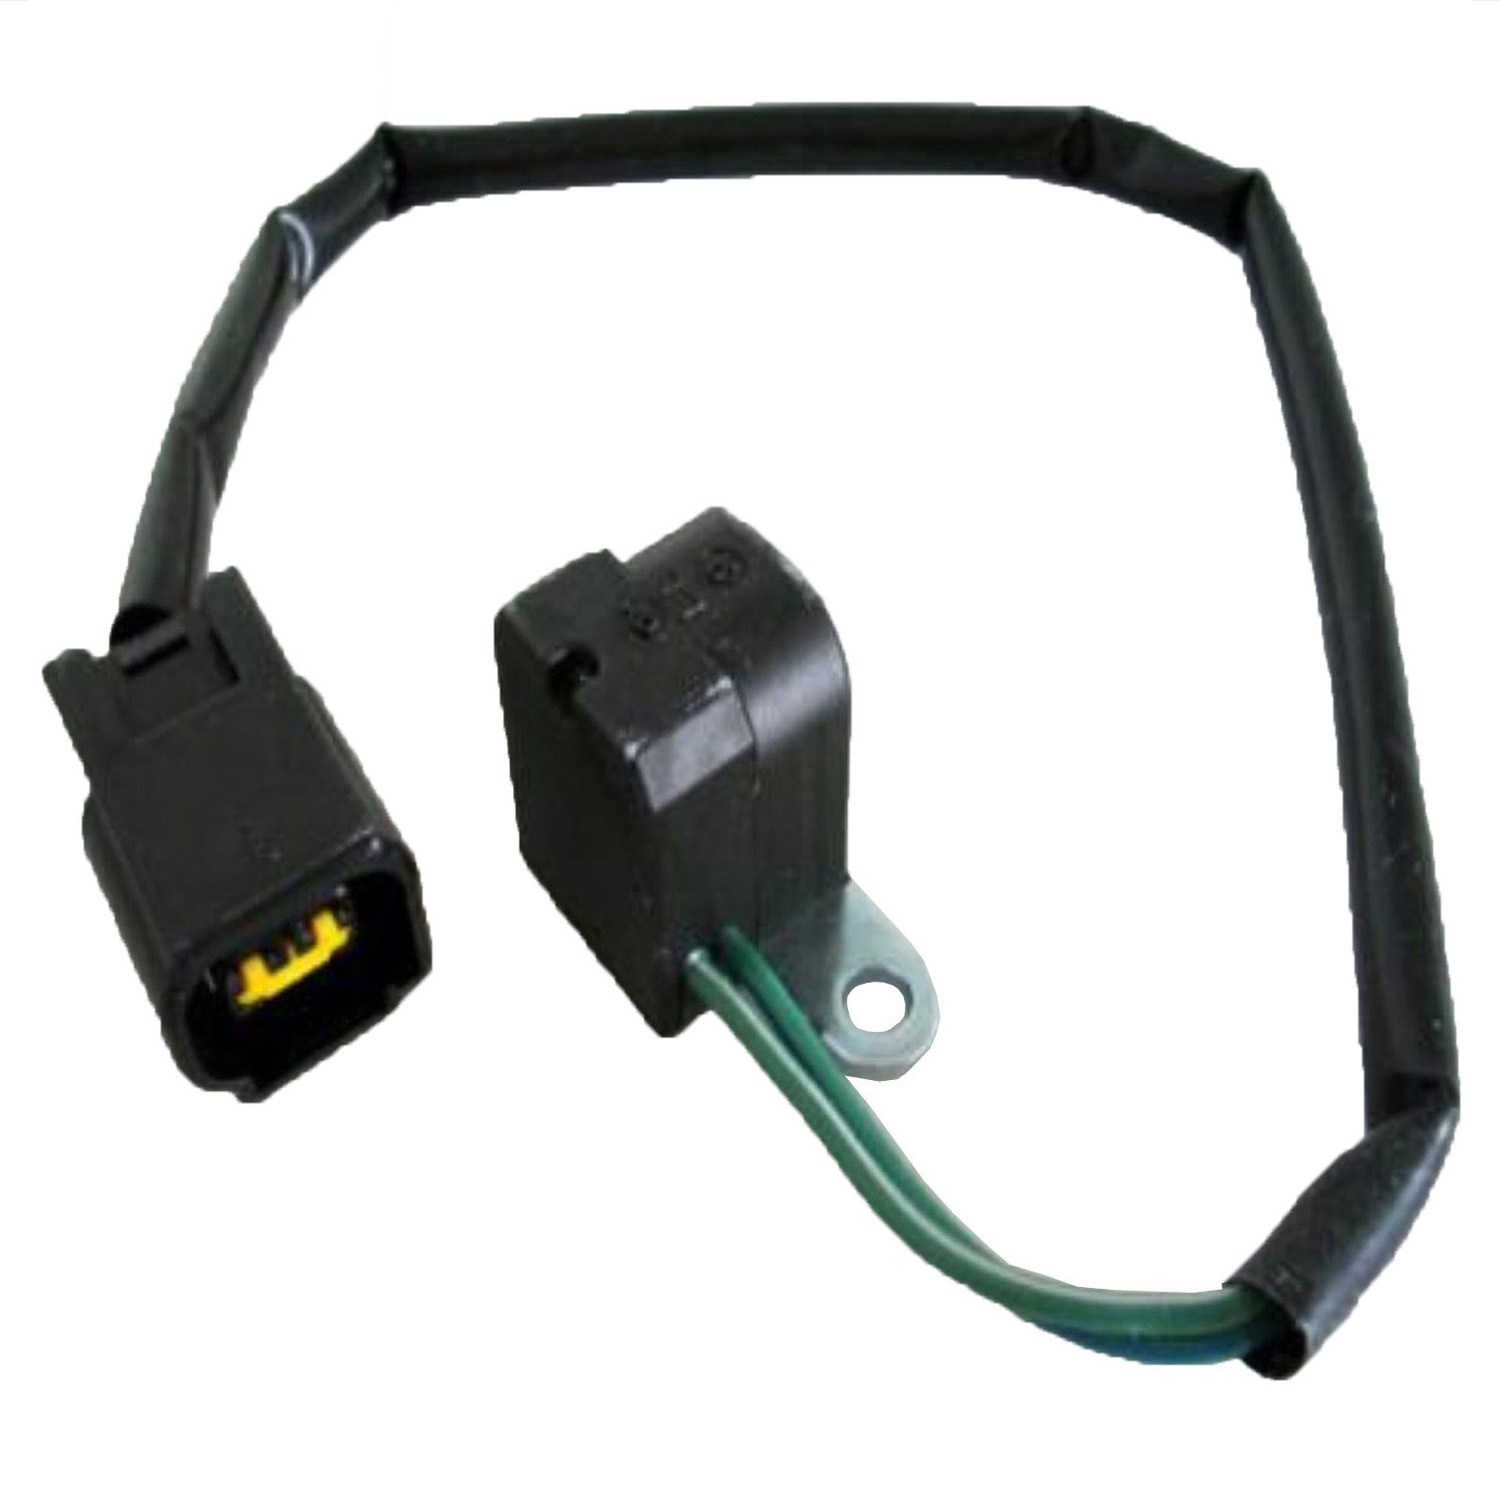 Yamaha Crank Position Sensor 150 175 200 225 250 300 Hp Hpdi Ox66 V Outboard Wiring Picture 1 Of